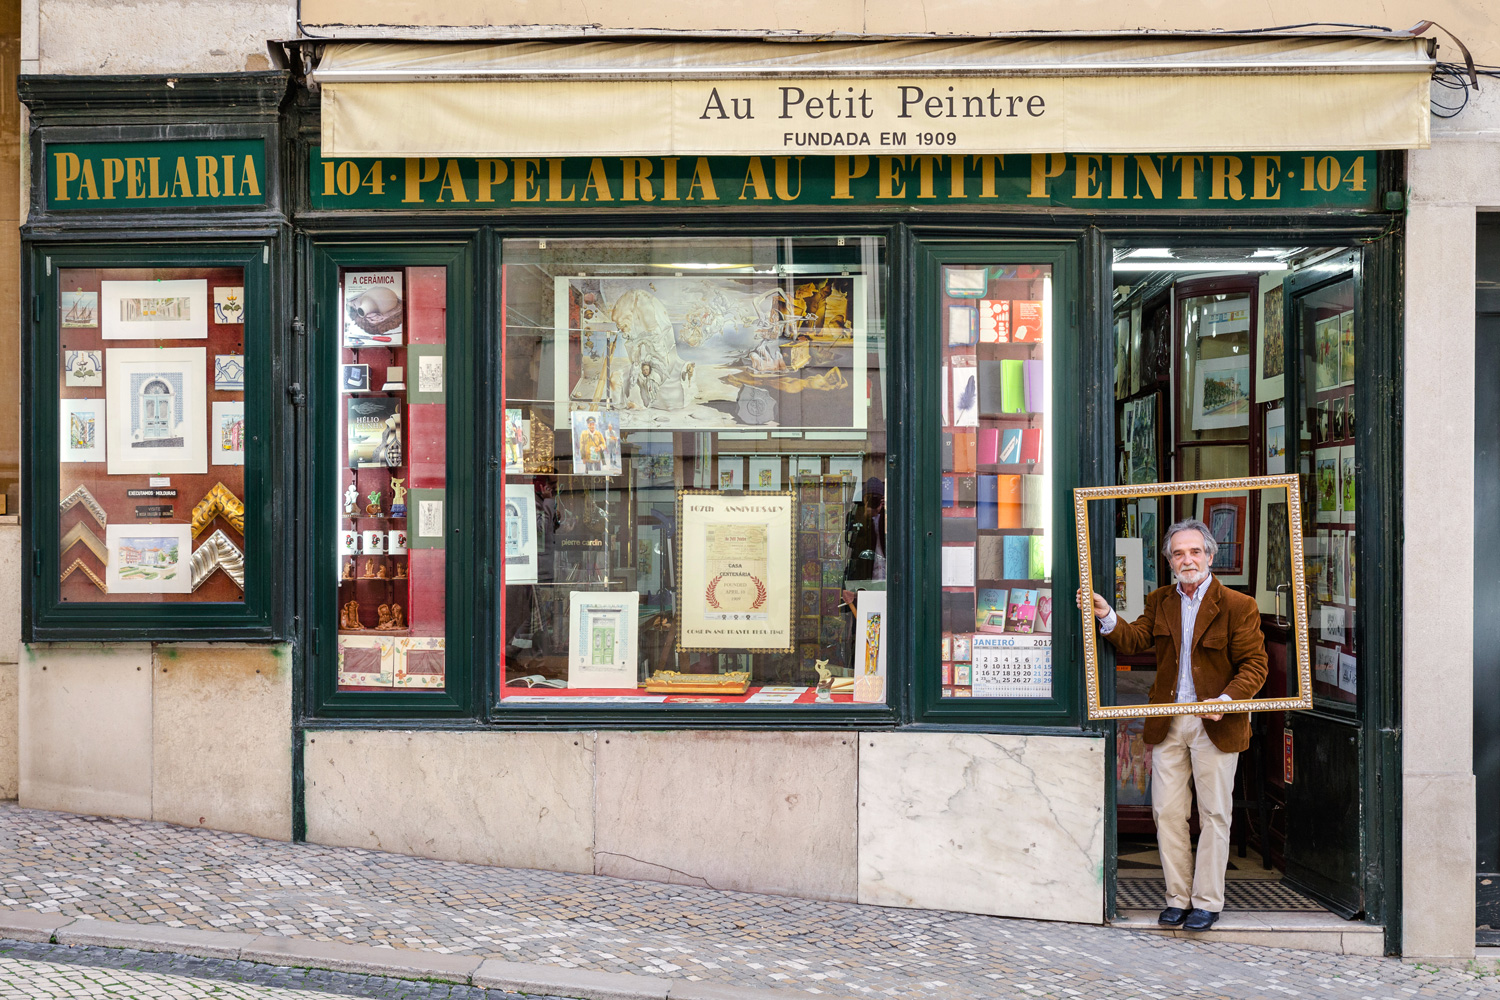 Life is a work of art for José ManuelFragueiroDominguez, stationery store owner